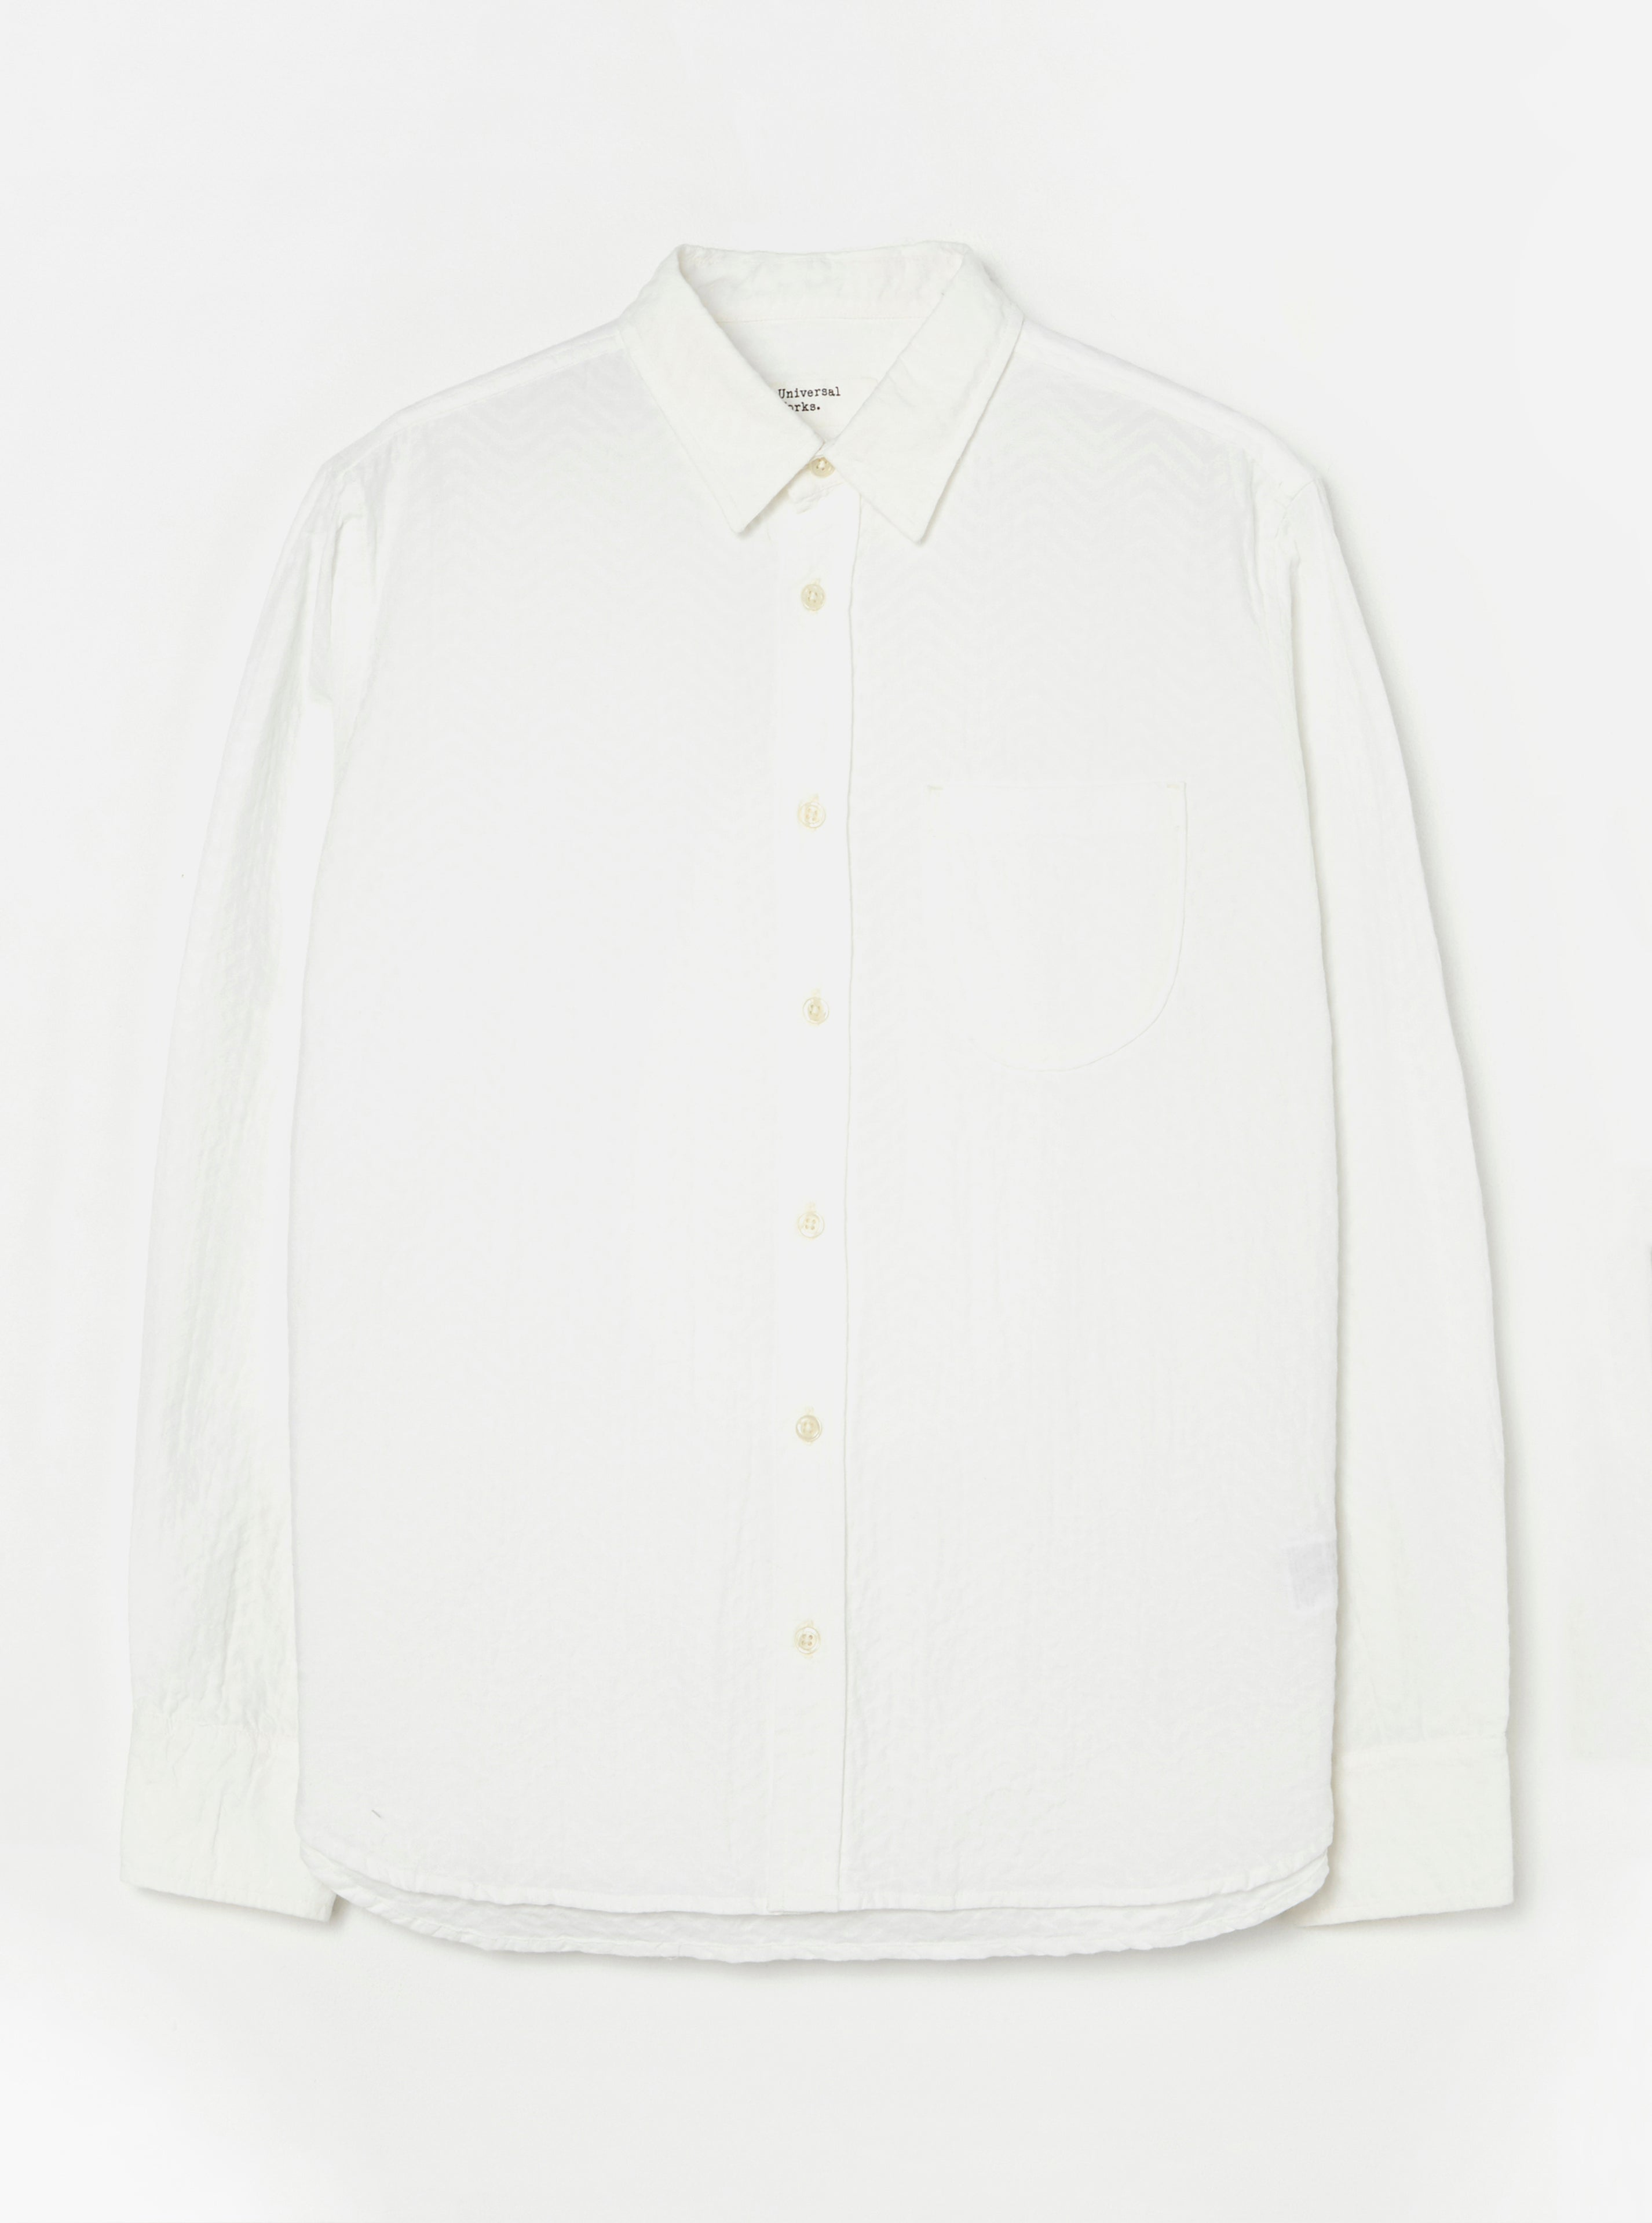 Universal Works New Standard Shirt in White Self Weave